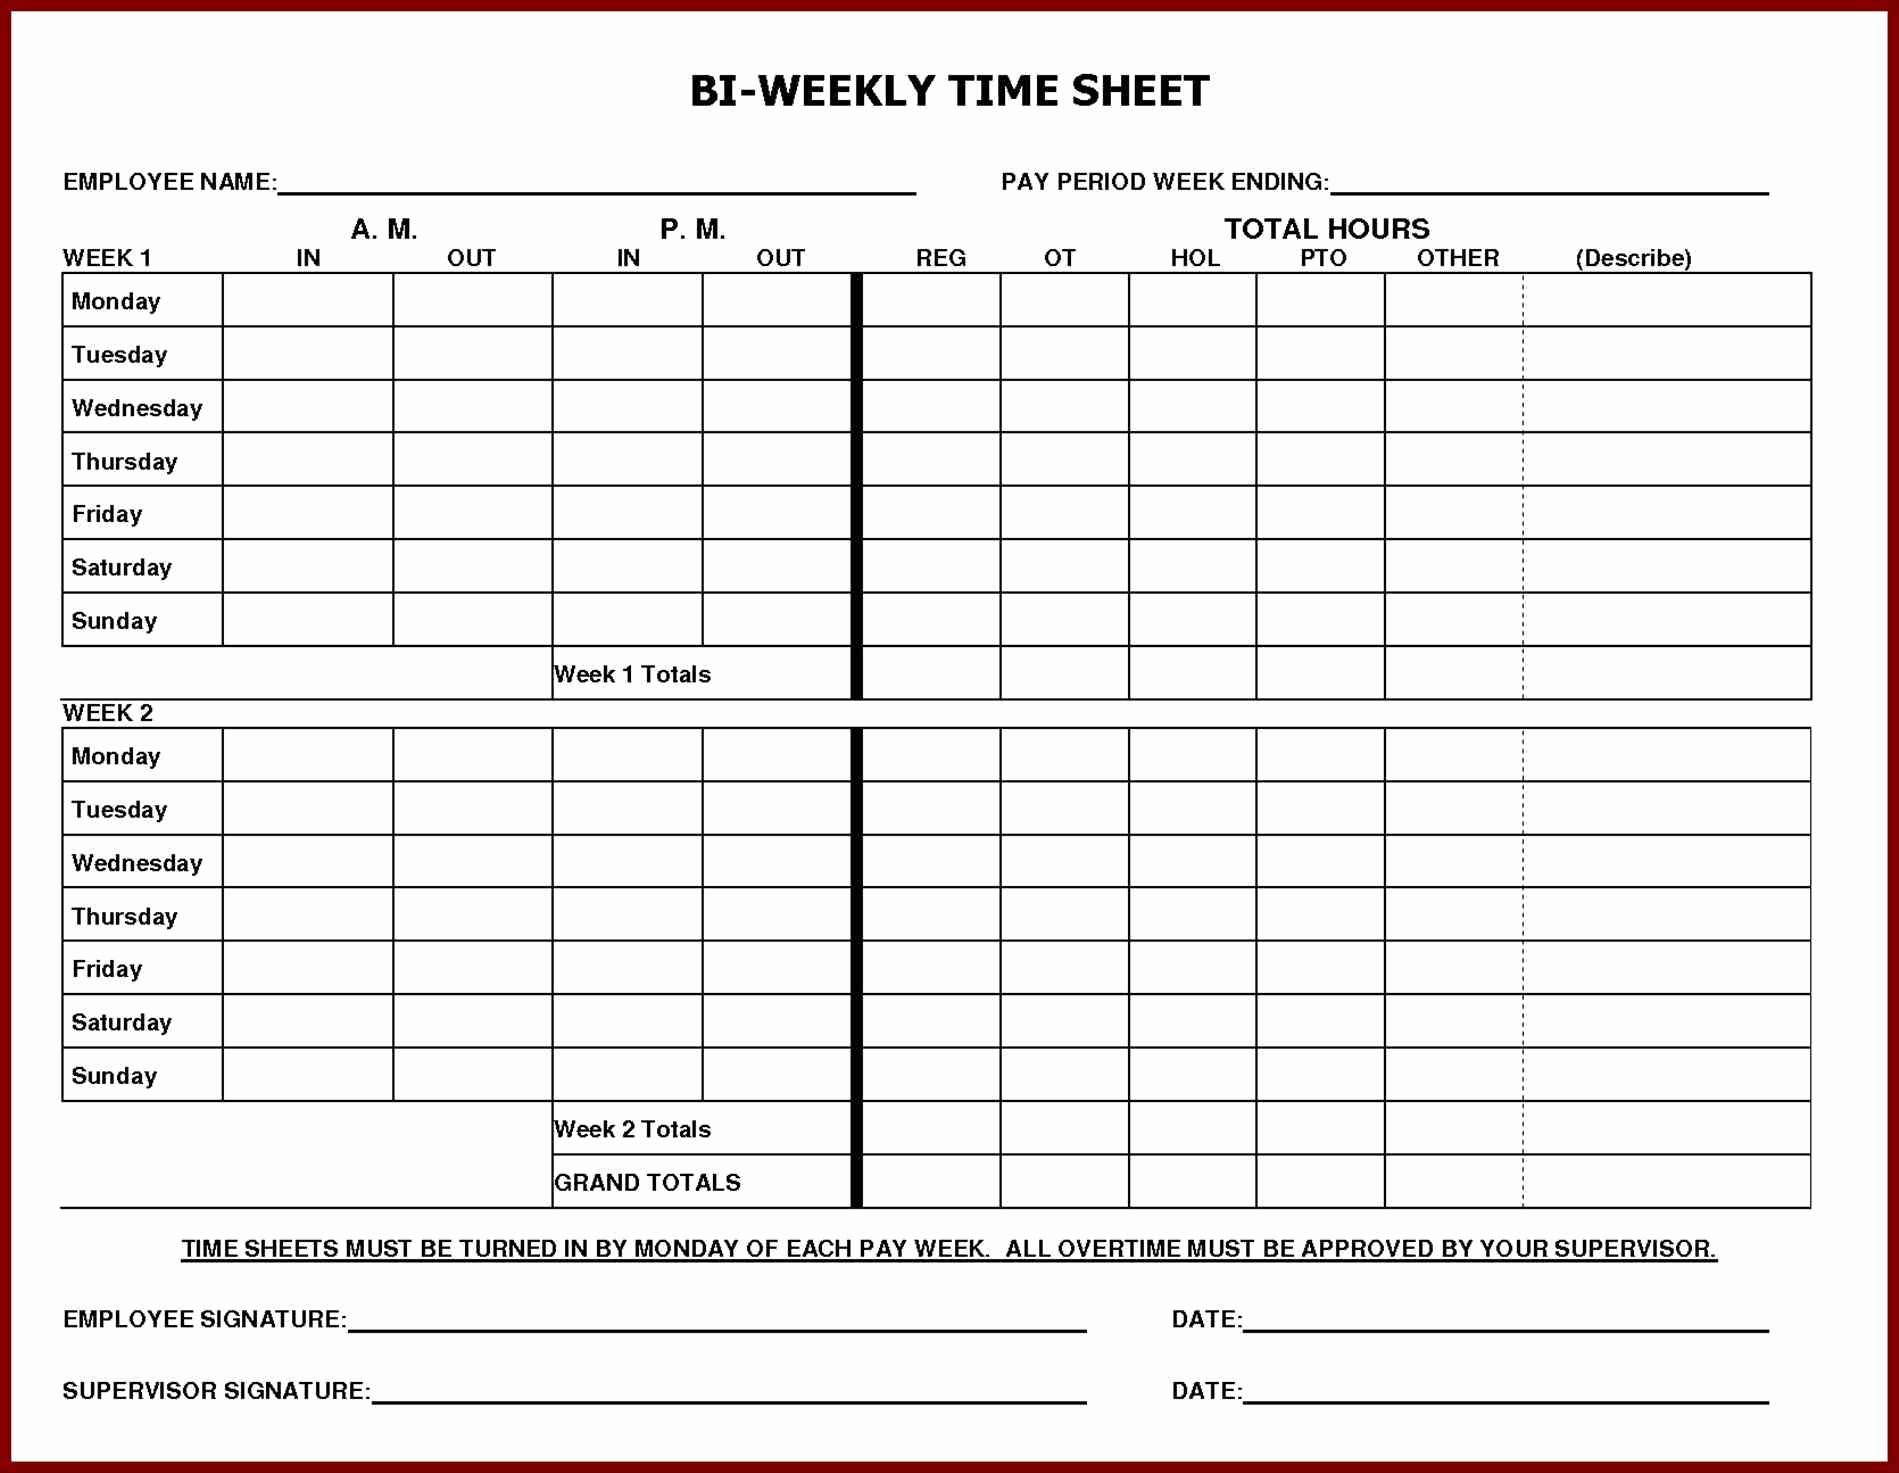 Daily Time Sheets Free Printable Lovely Daily Time Sheet Printable Printable 360 Degree